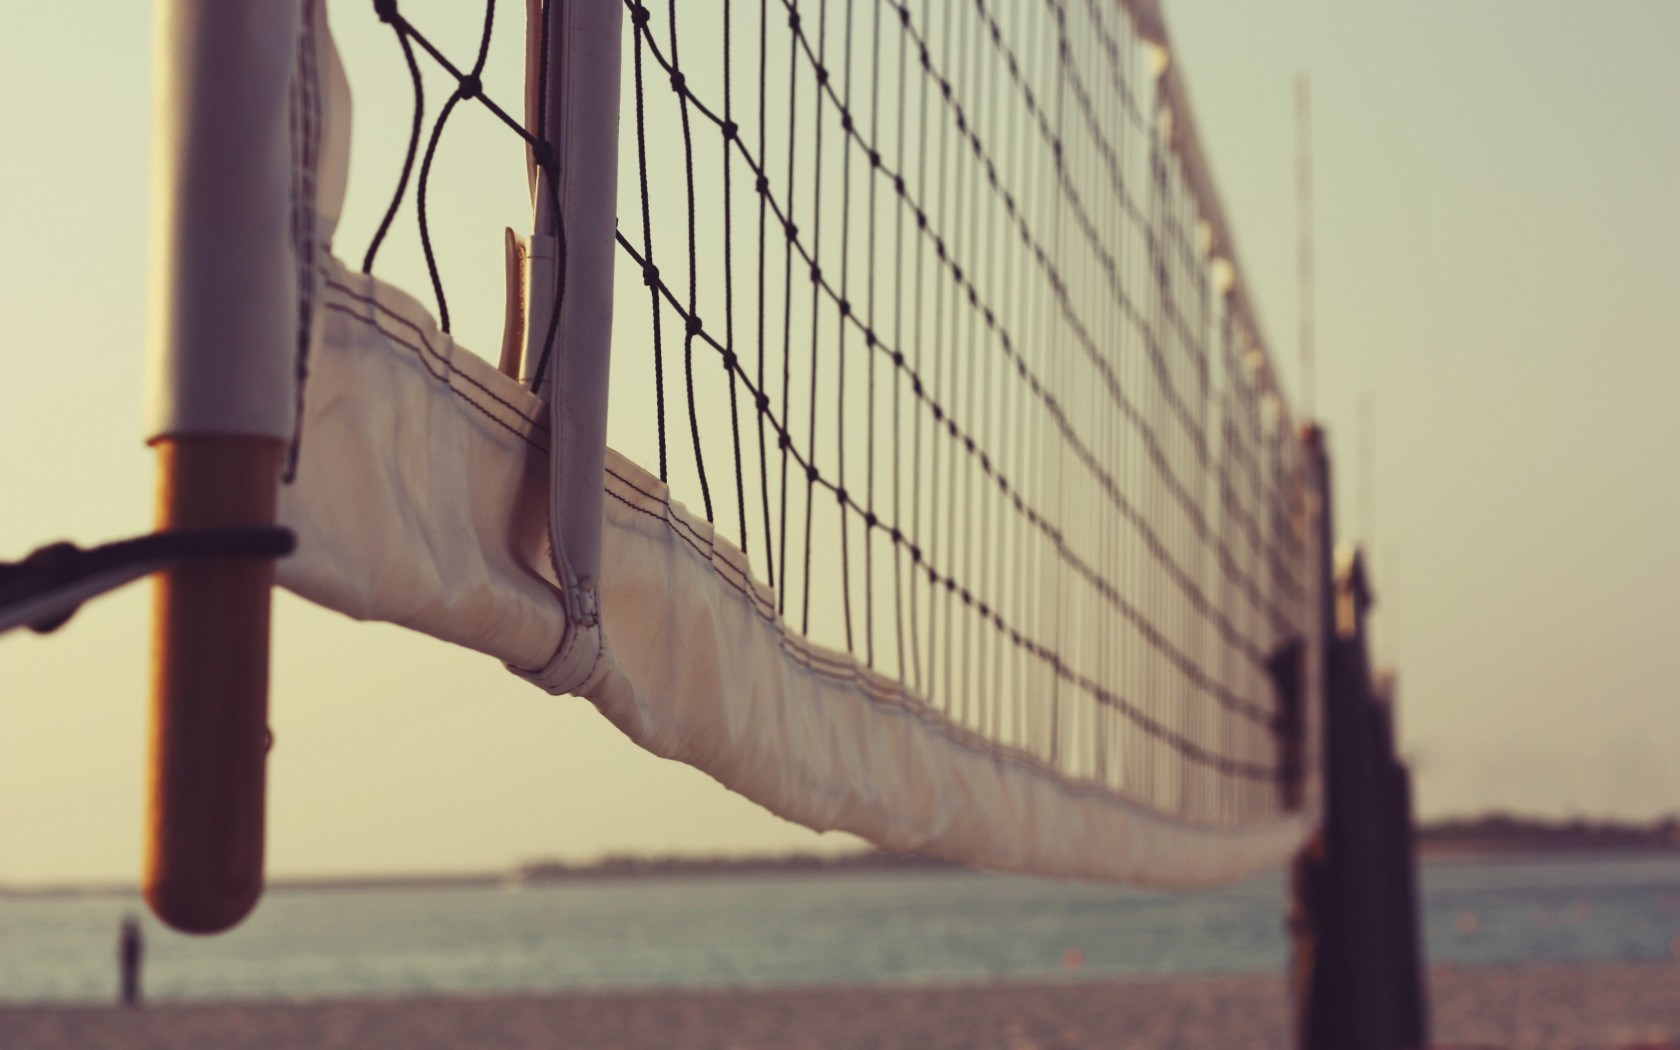 Volleyball Net Summer Beach